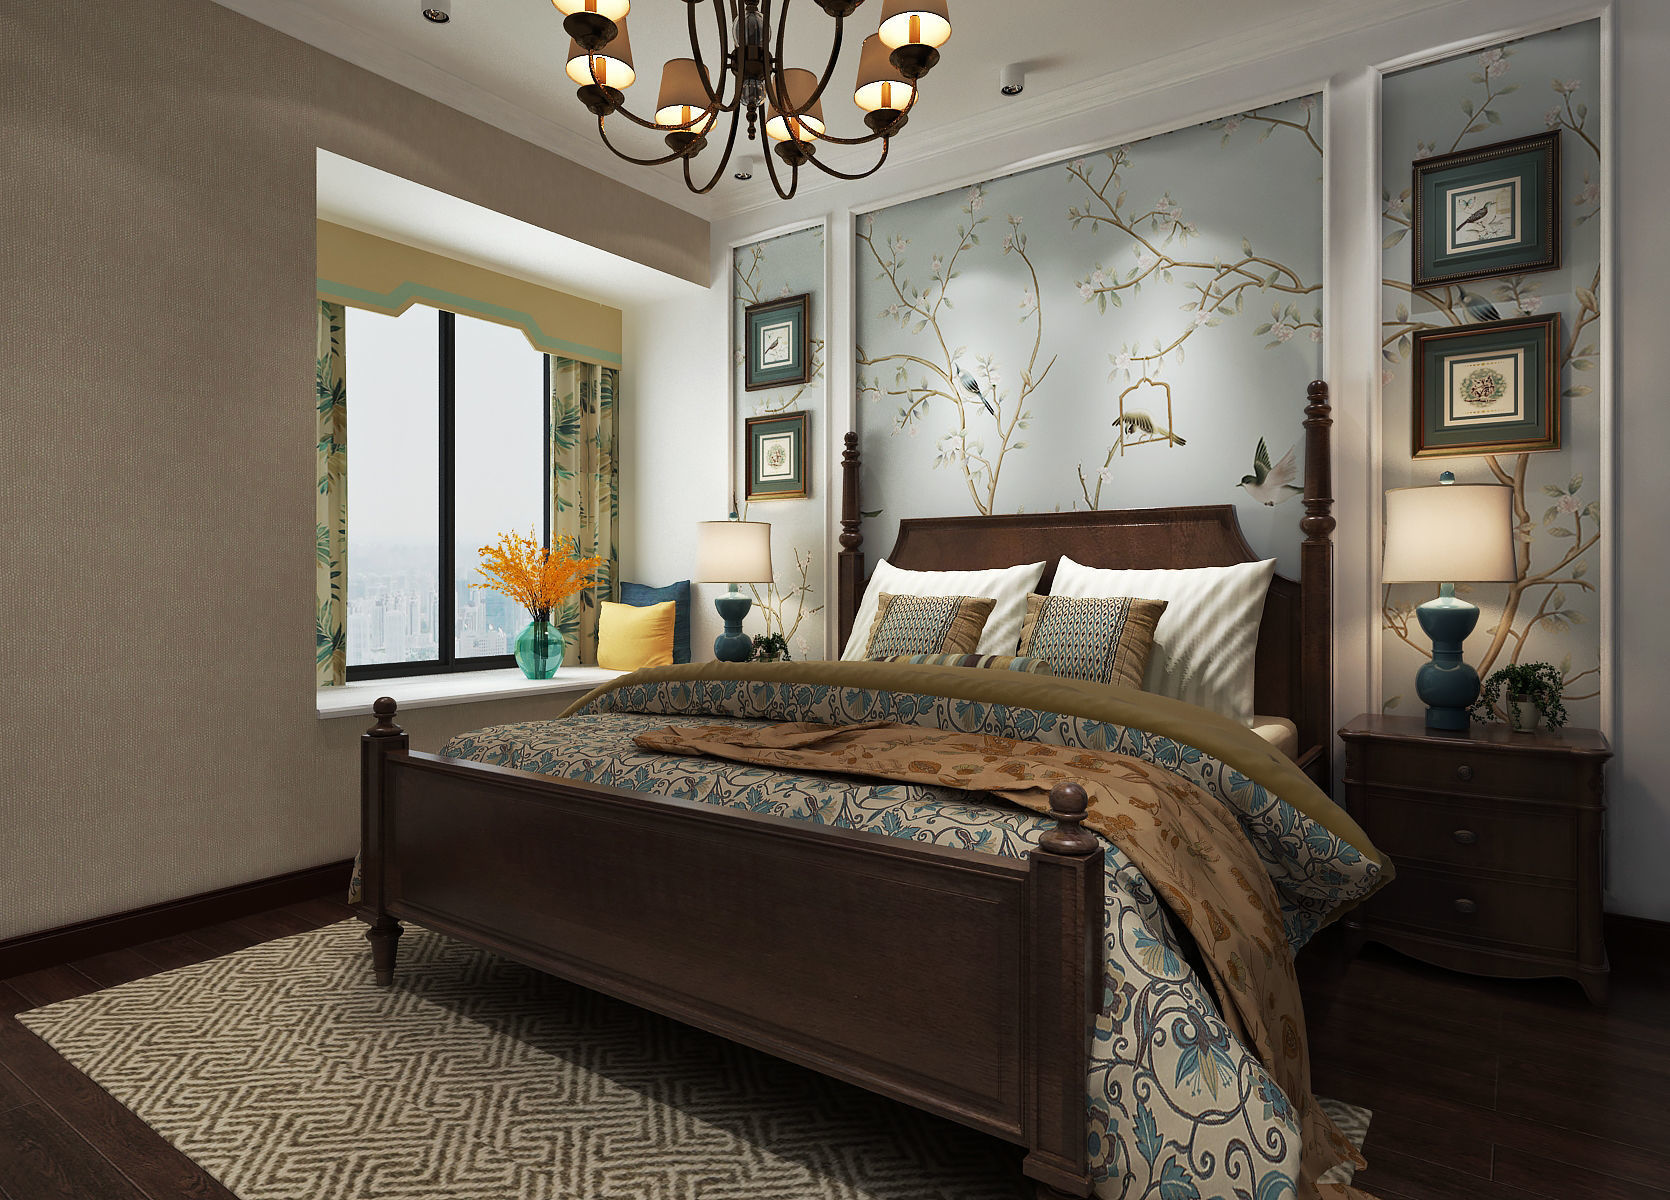 American Style Bedroom Design 3D | CGTrader on Model Bedroom Ideas  id=13994